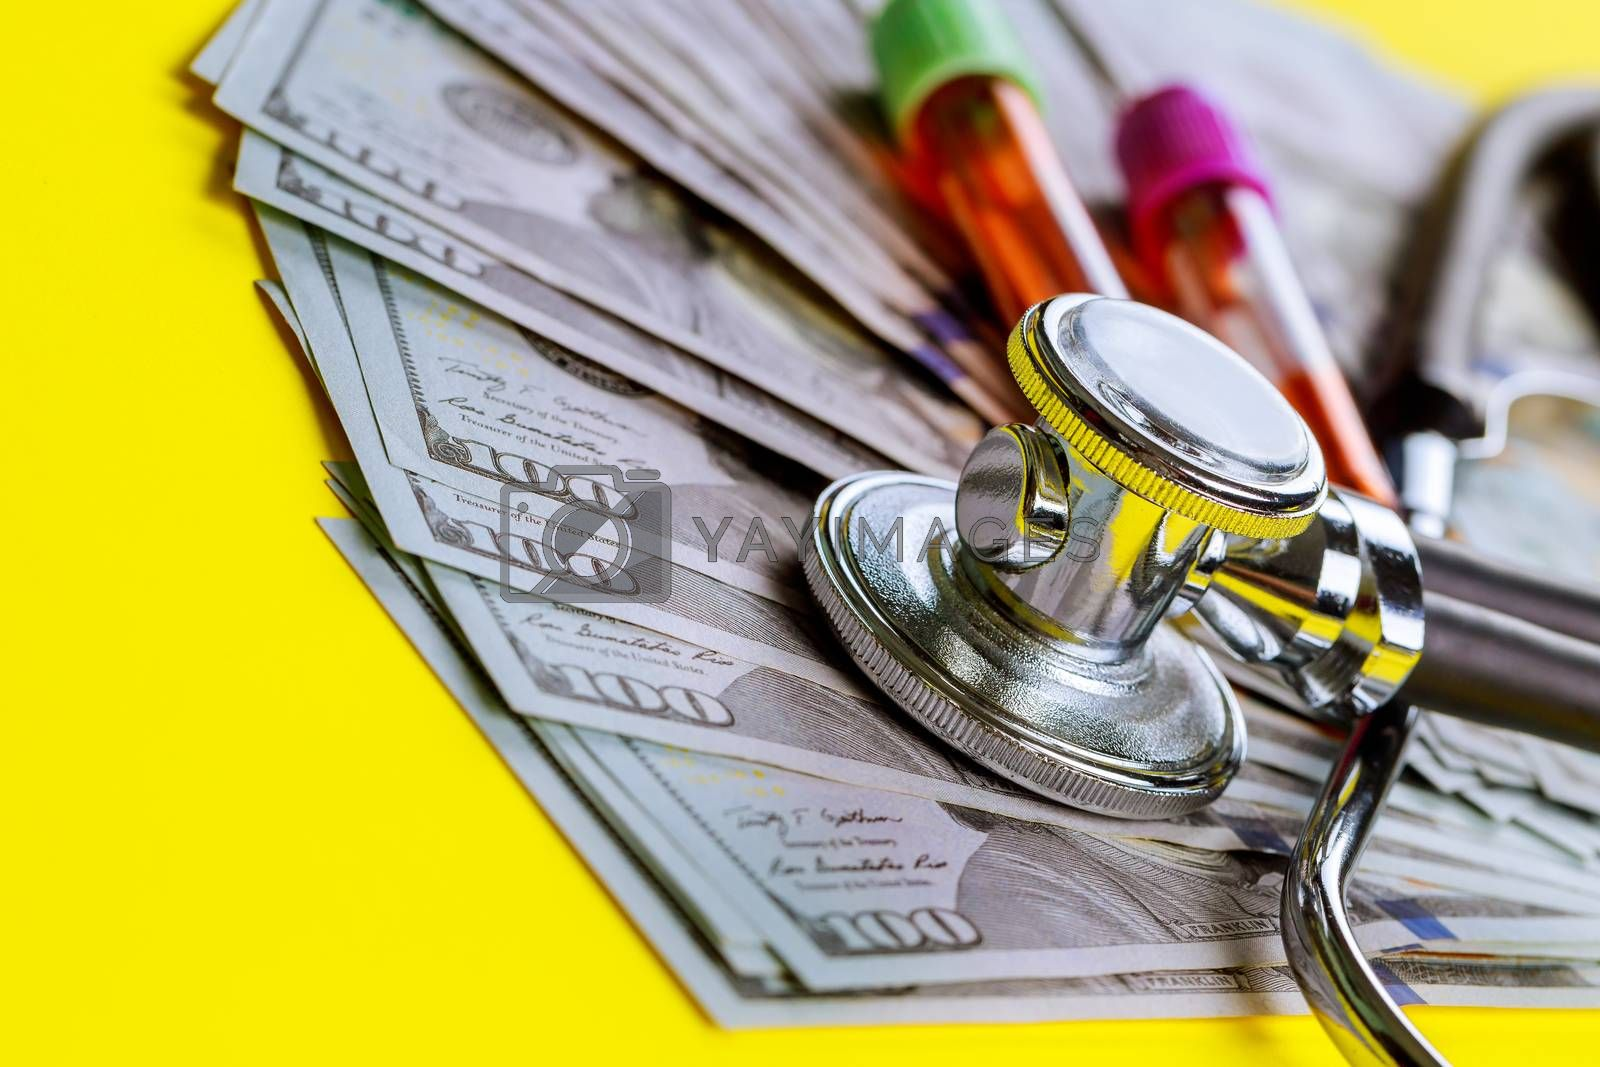 Stethoscope on of one hundred dollar bills, blood test tubes expensive cost of healthcare or financing medicine